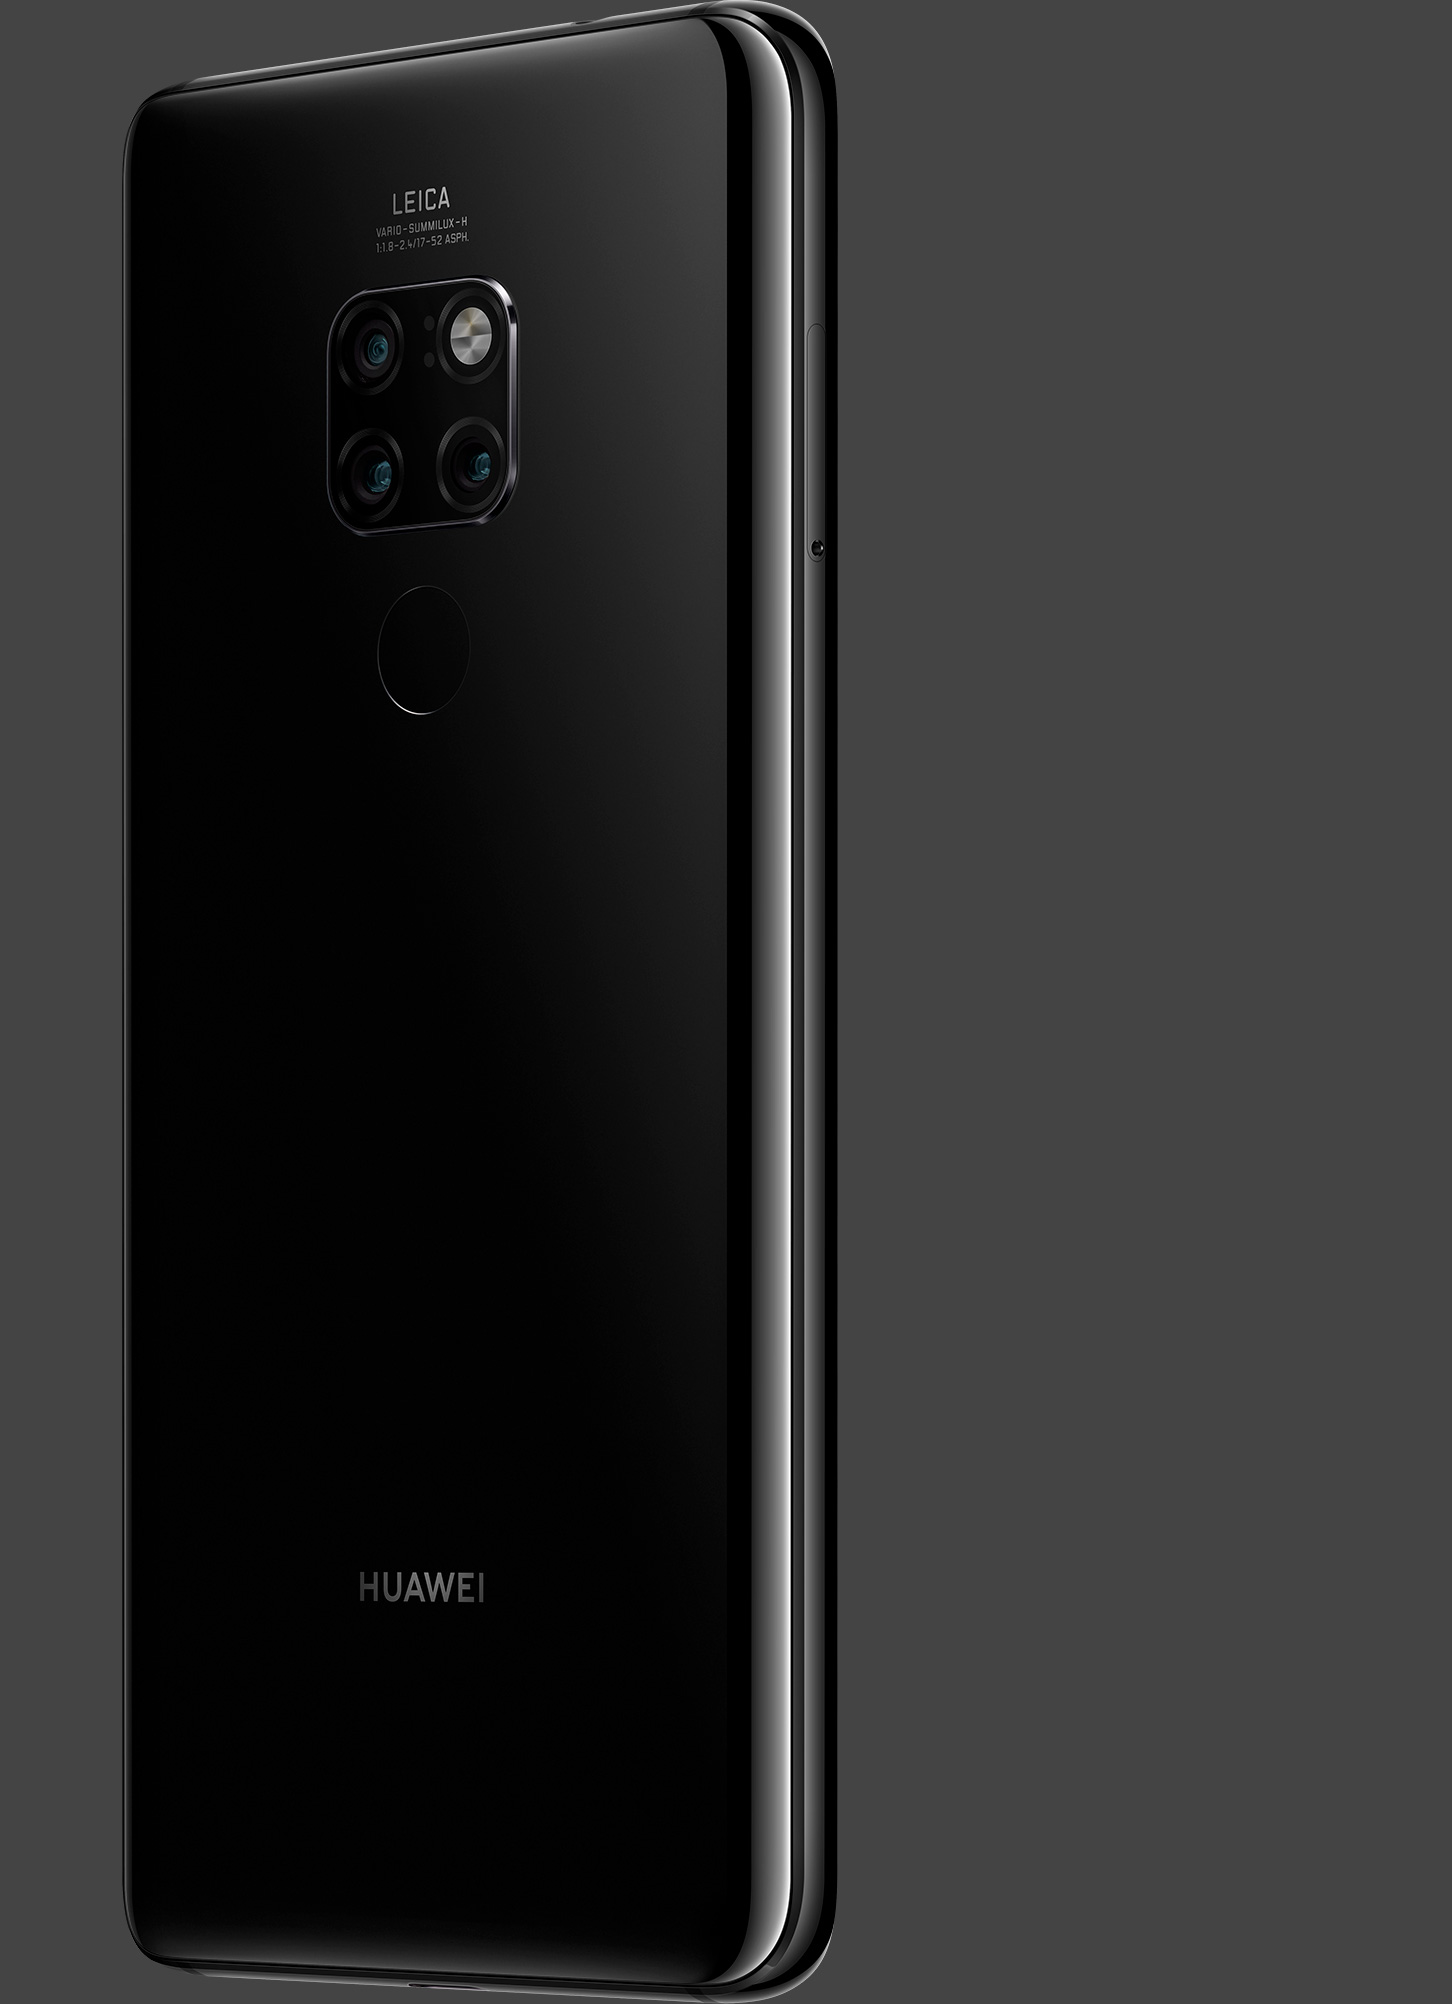 Details about Huawei Mate 20 HMA-L29 128GB (FACTORY UNLOCKED) 6 53